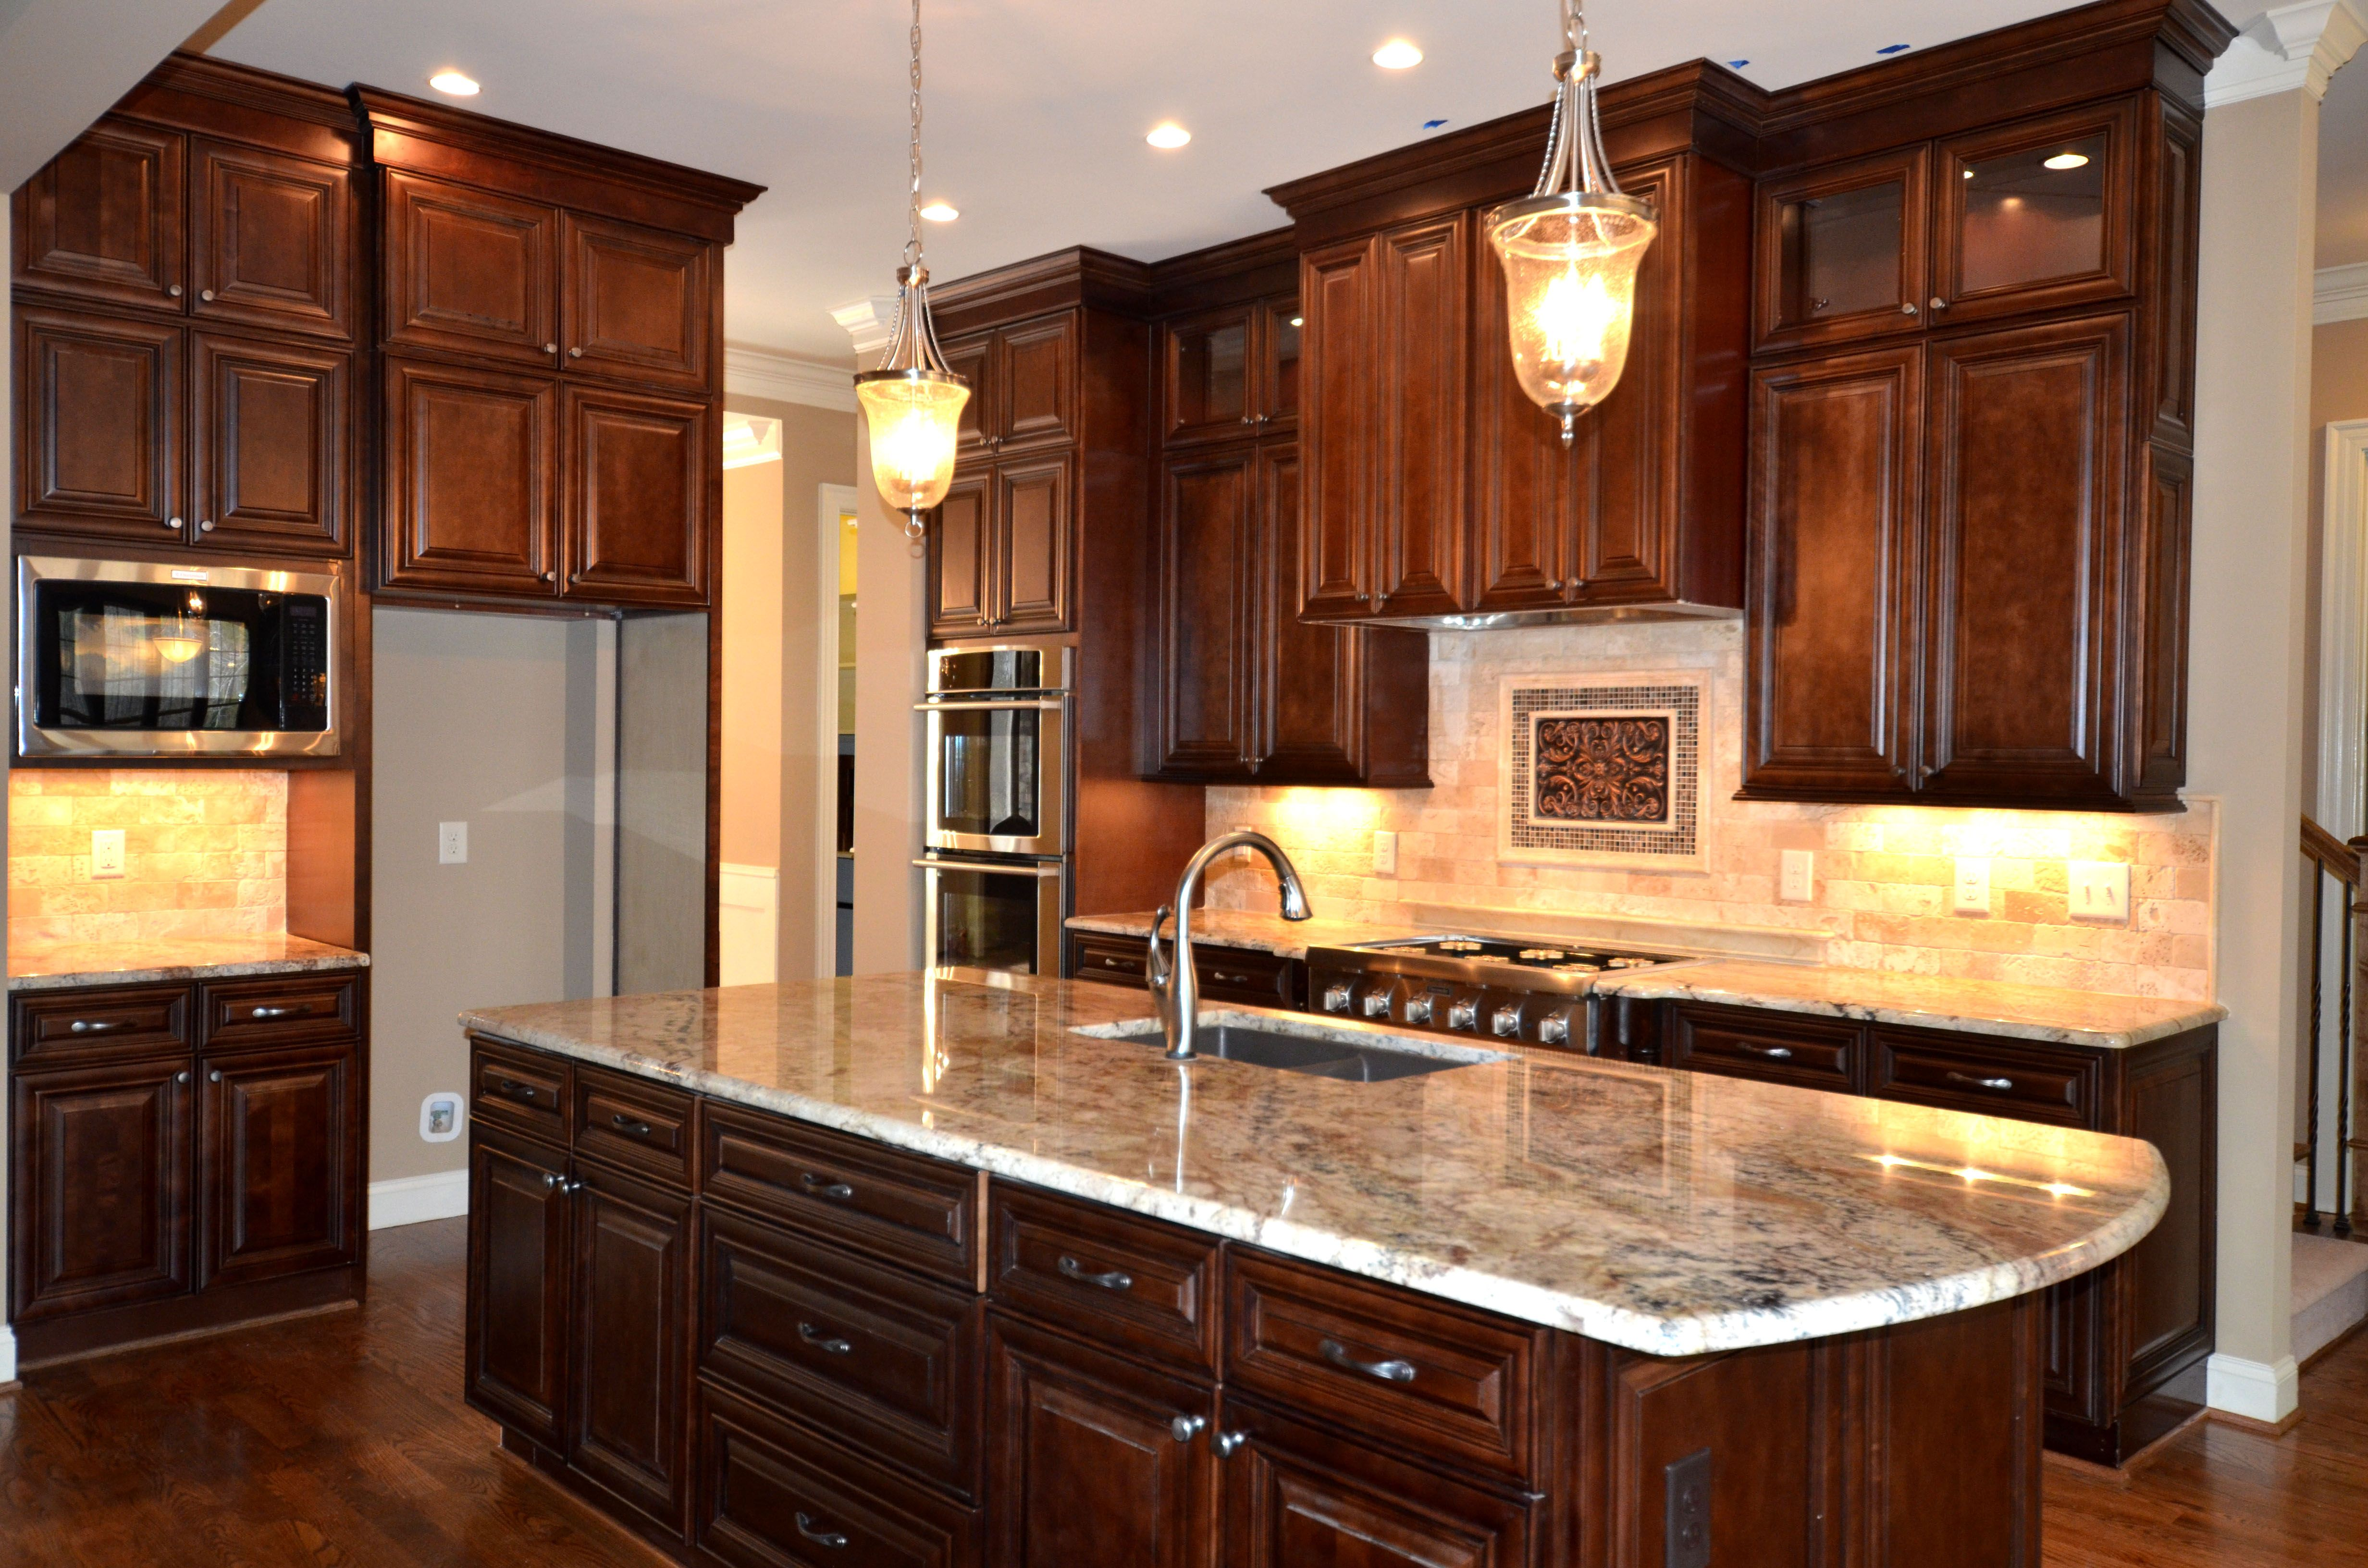 Chocolate Kitchen Cabinets Pull Down Faucet Replacement Head Stapp Kitchen2 Bristol Lily Ann Com